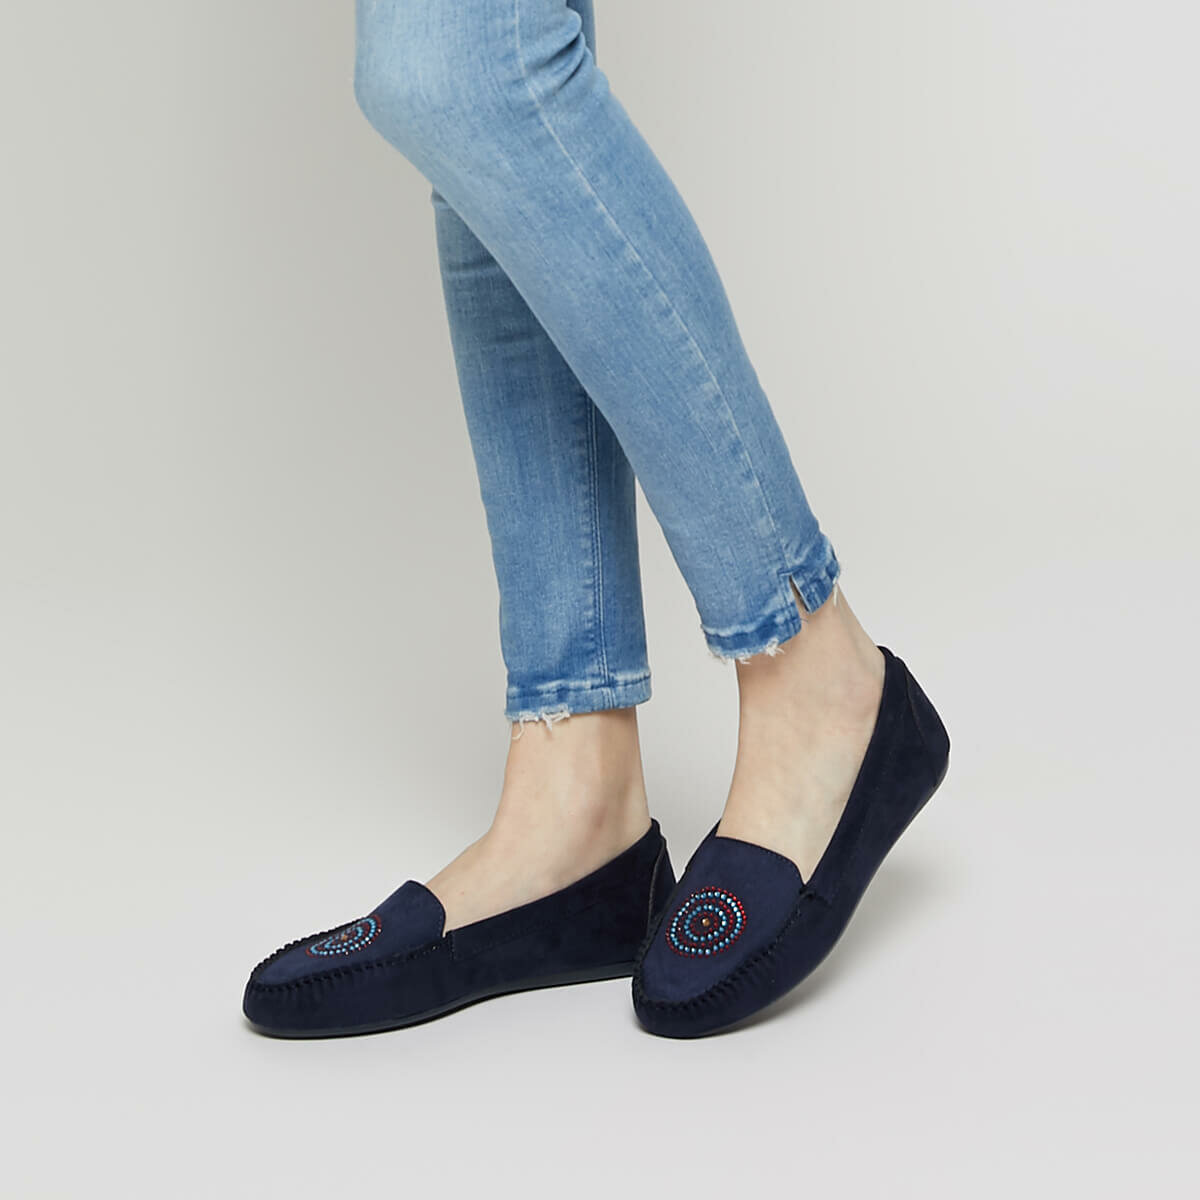 FLO DS19038 Navy Blue Women 'S Loafer Shoes Miss F